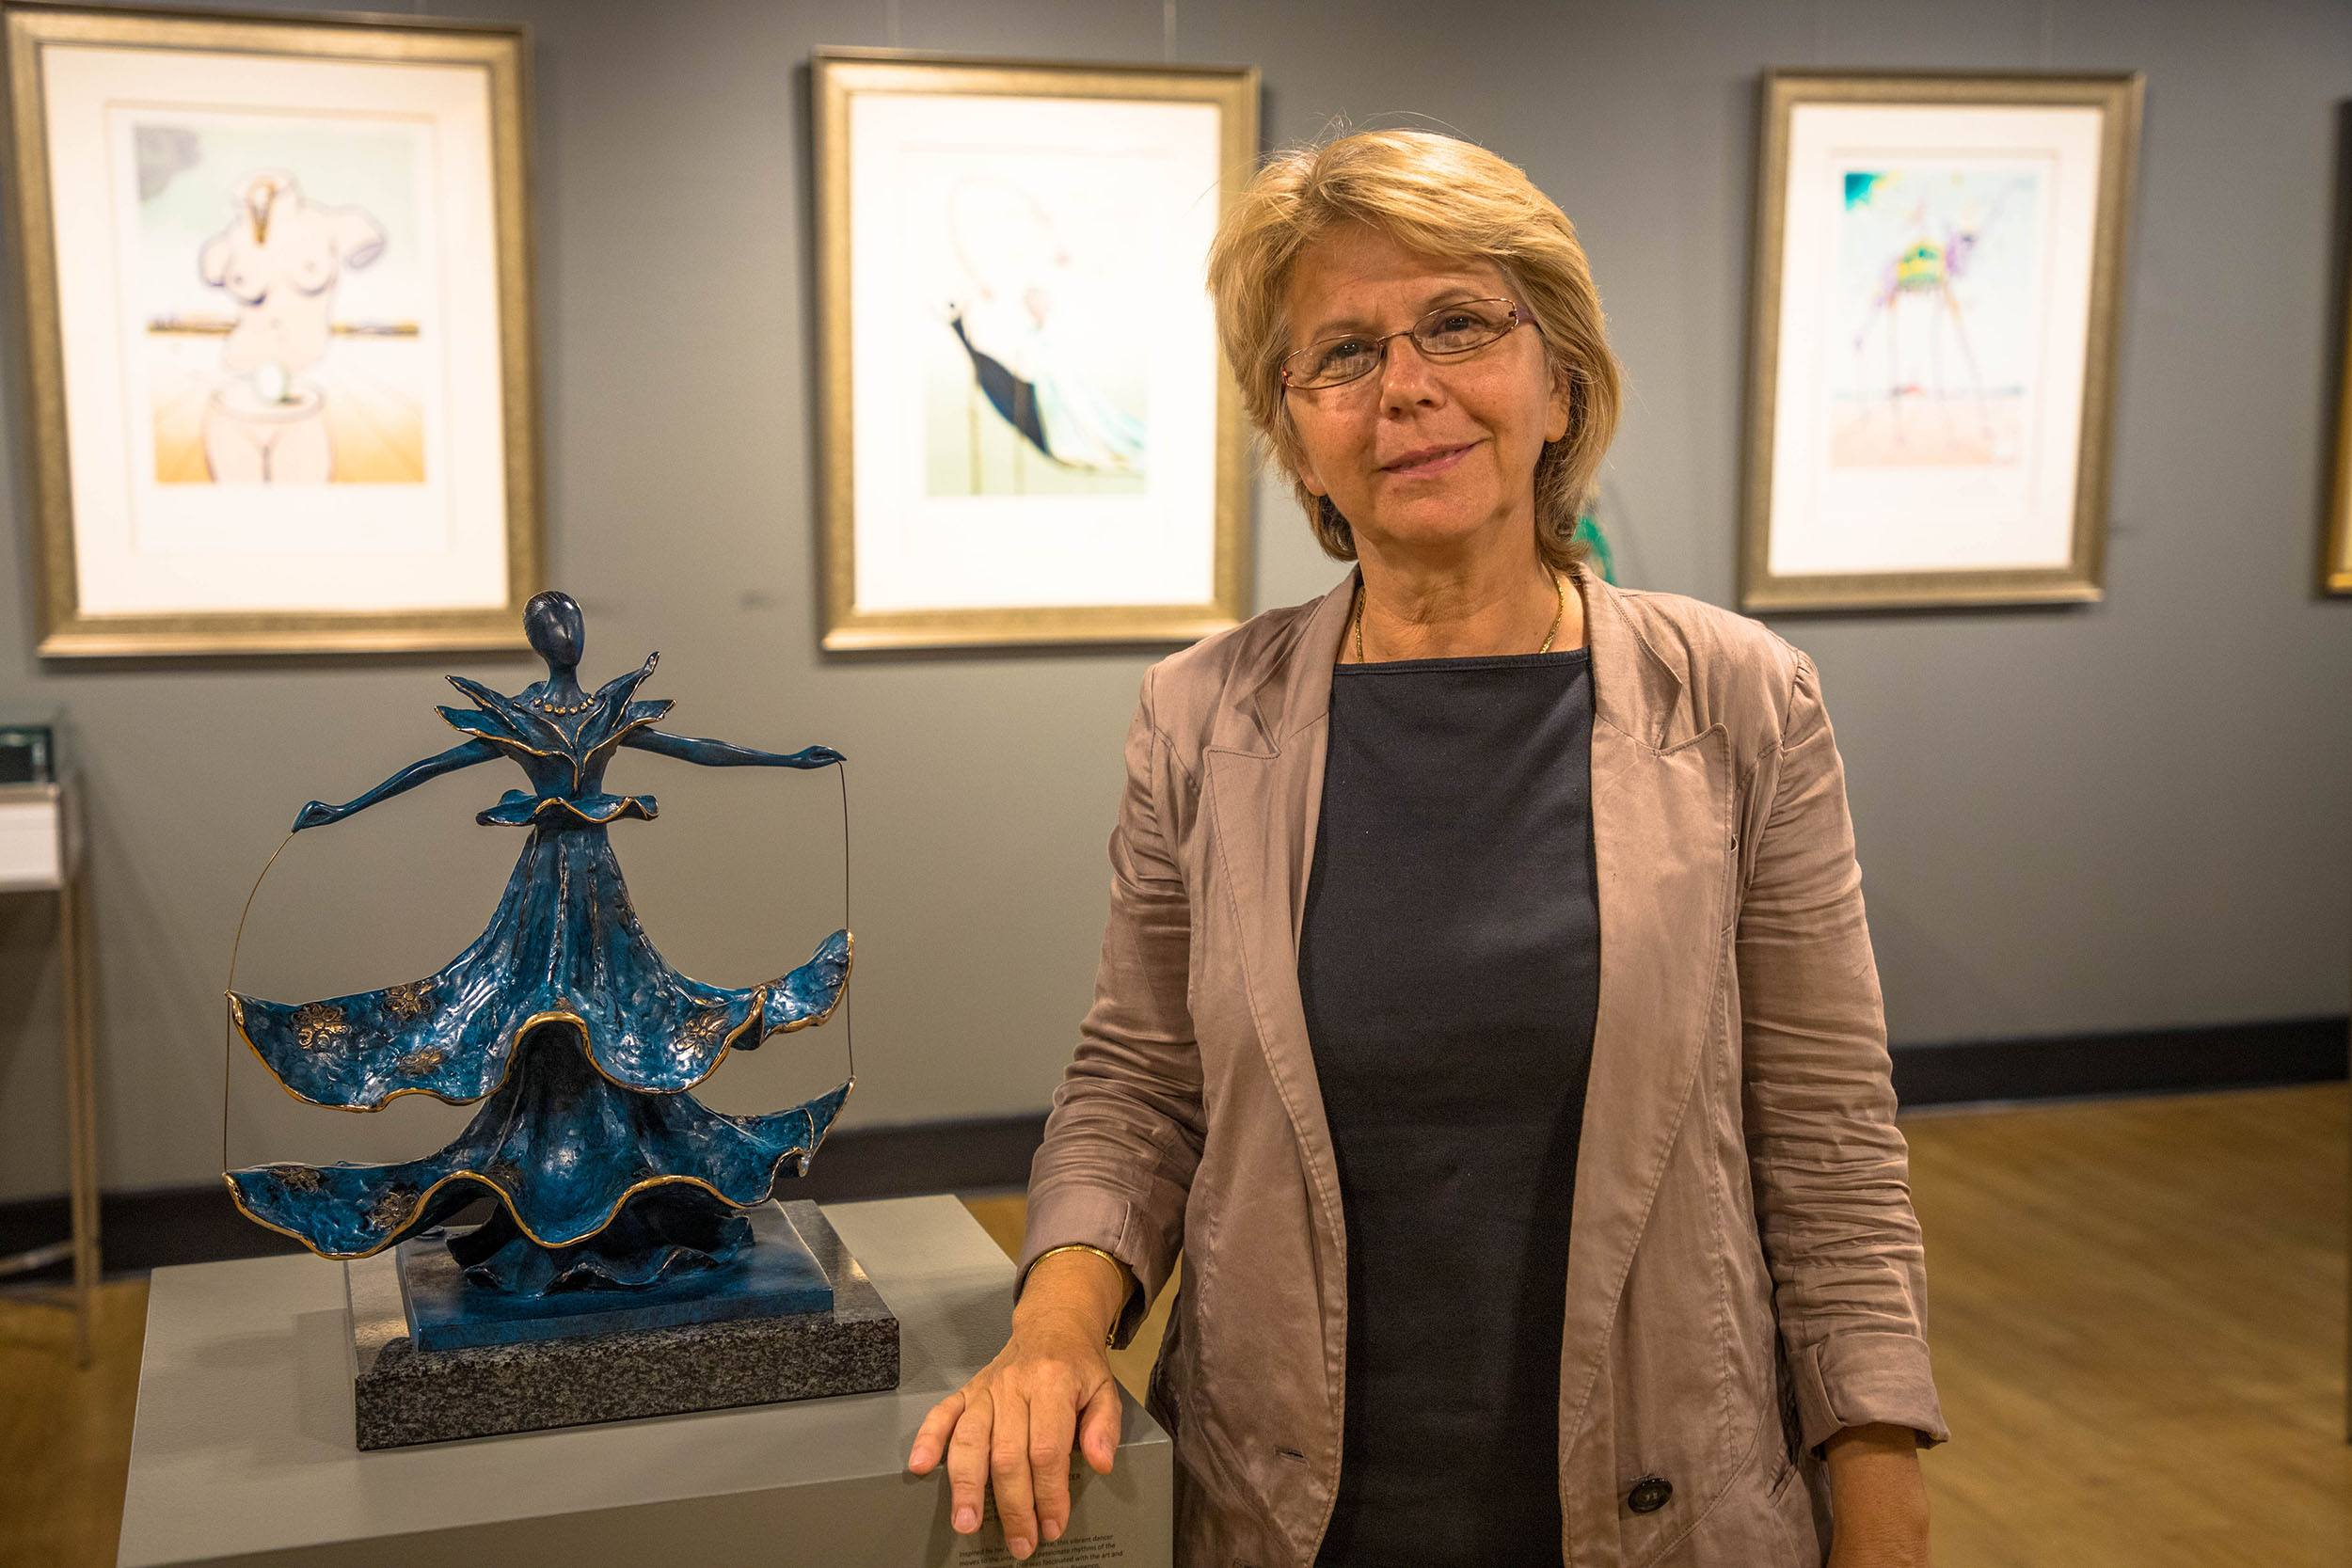 Susanna Strem, Chali-Rosso Gallery owner, with Salvador Dalí's Dalinian Dancer (Jenni Sheppard/Daily Hive)